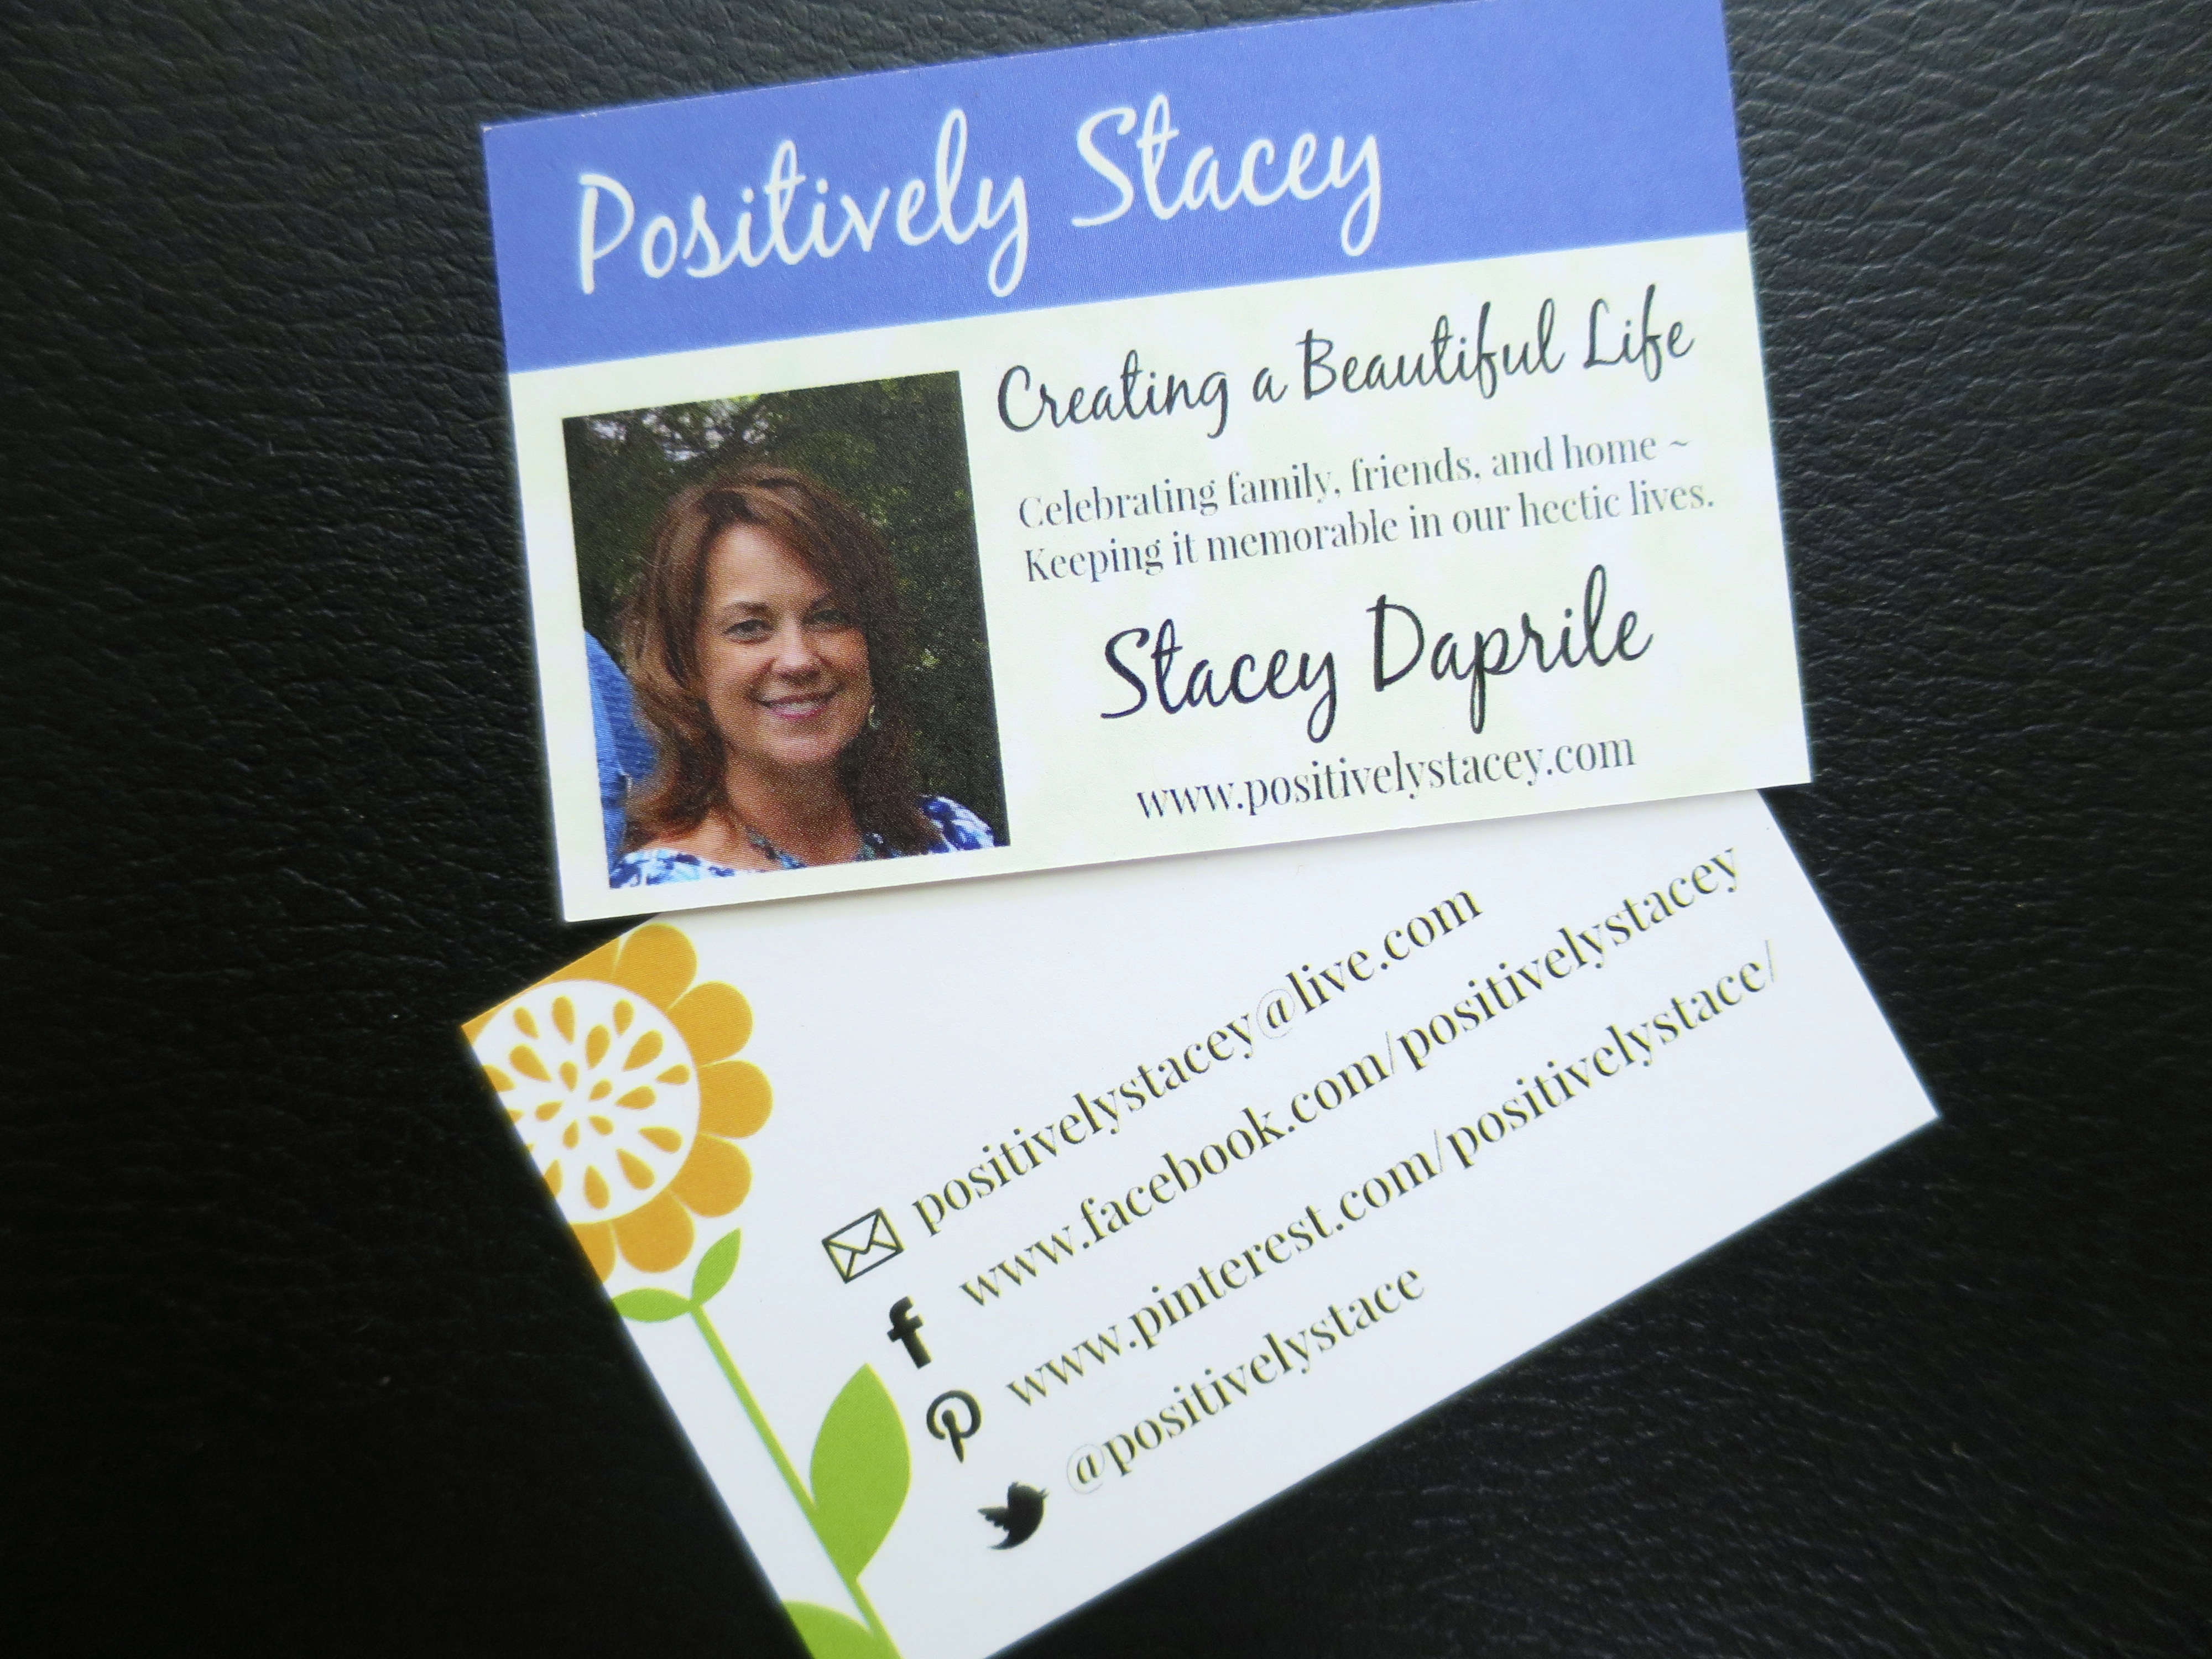 Positively-Stacey